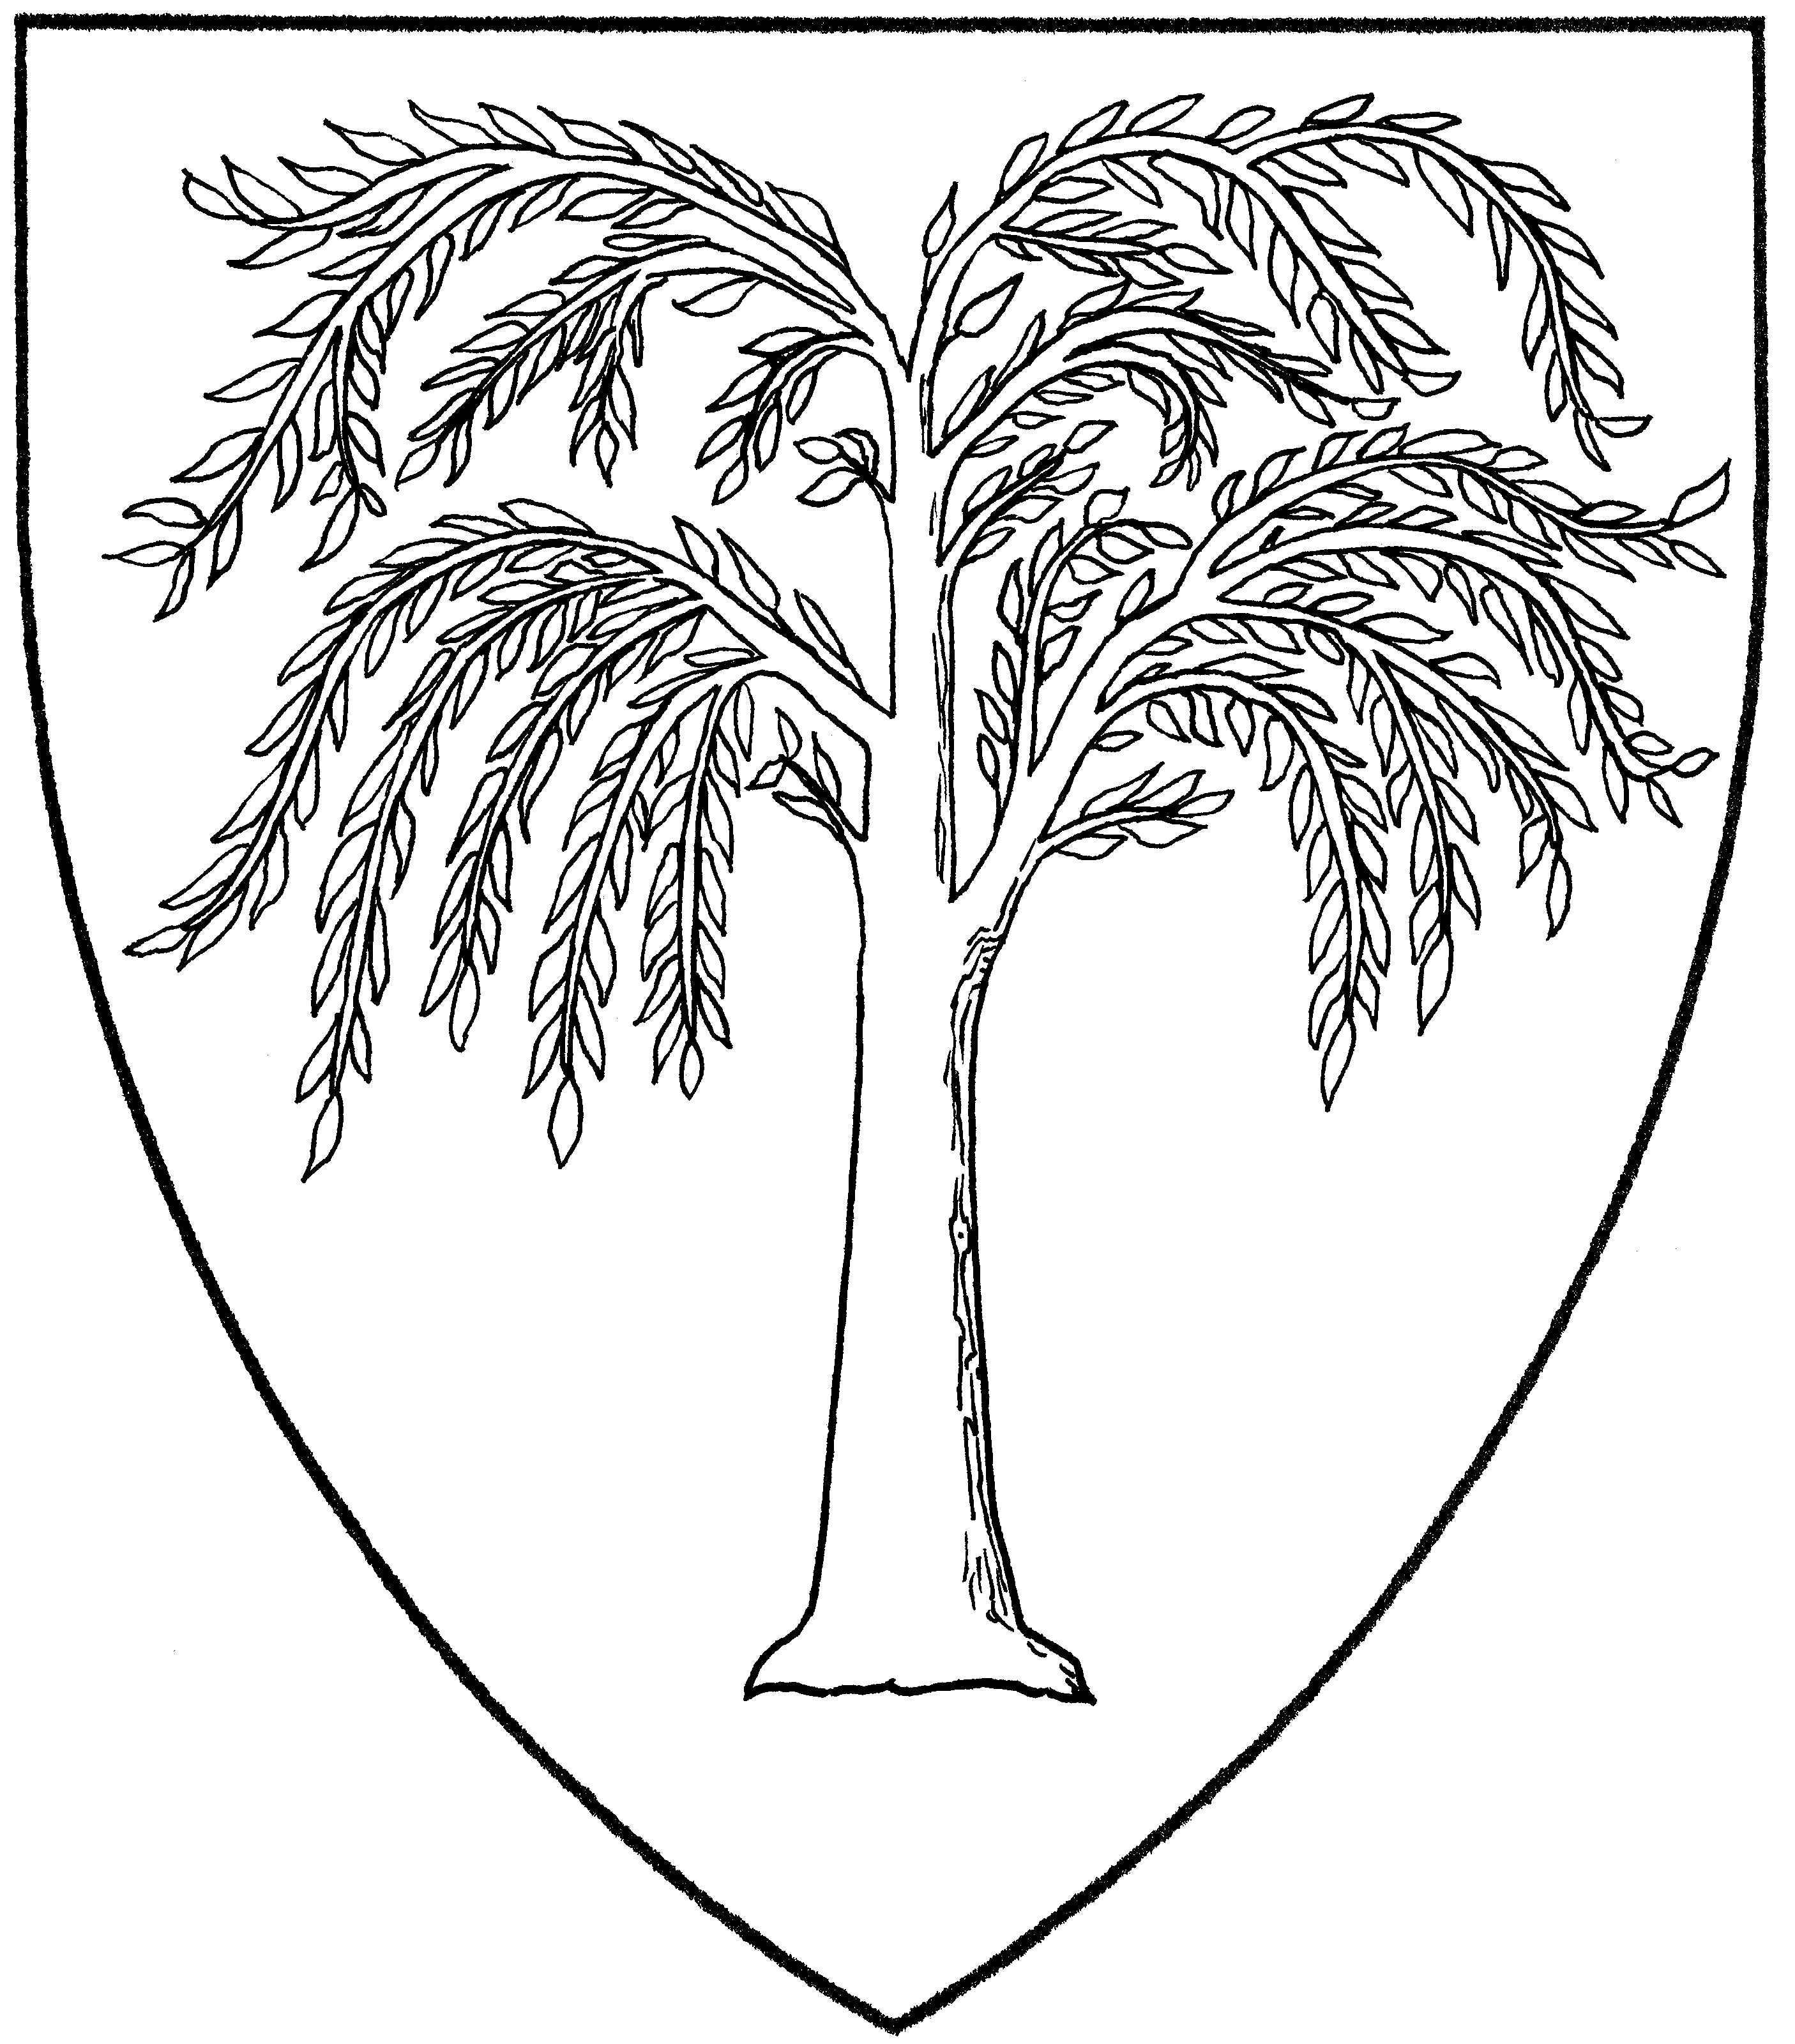 willow tree coloring page willow tree easy coloring pages page coloring willow tree